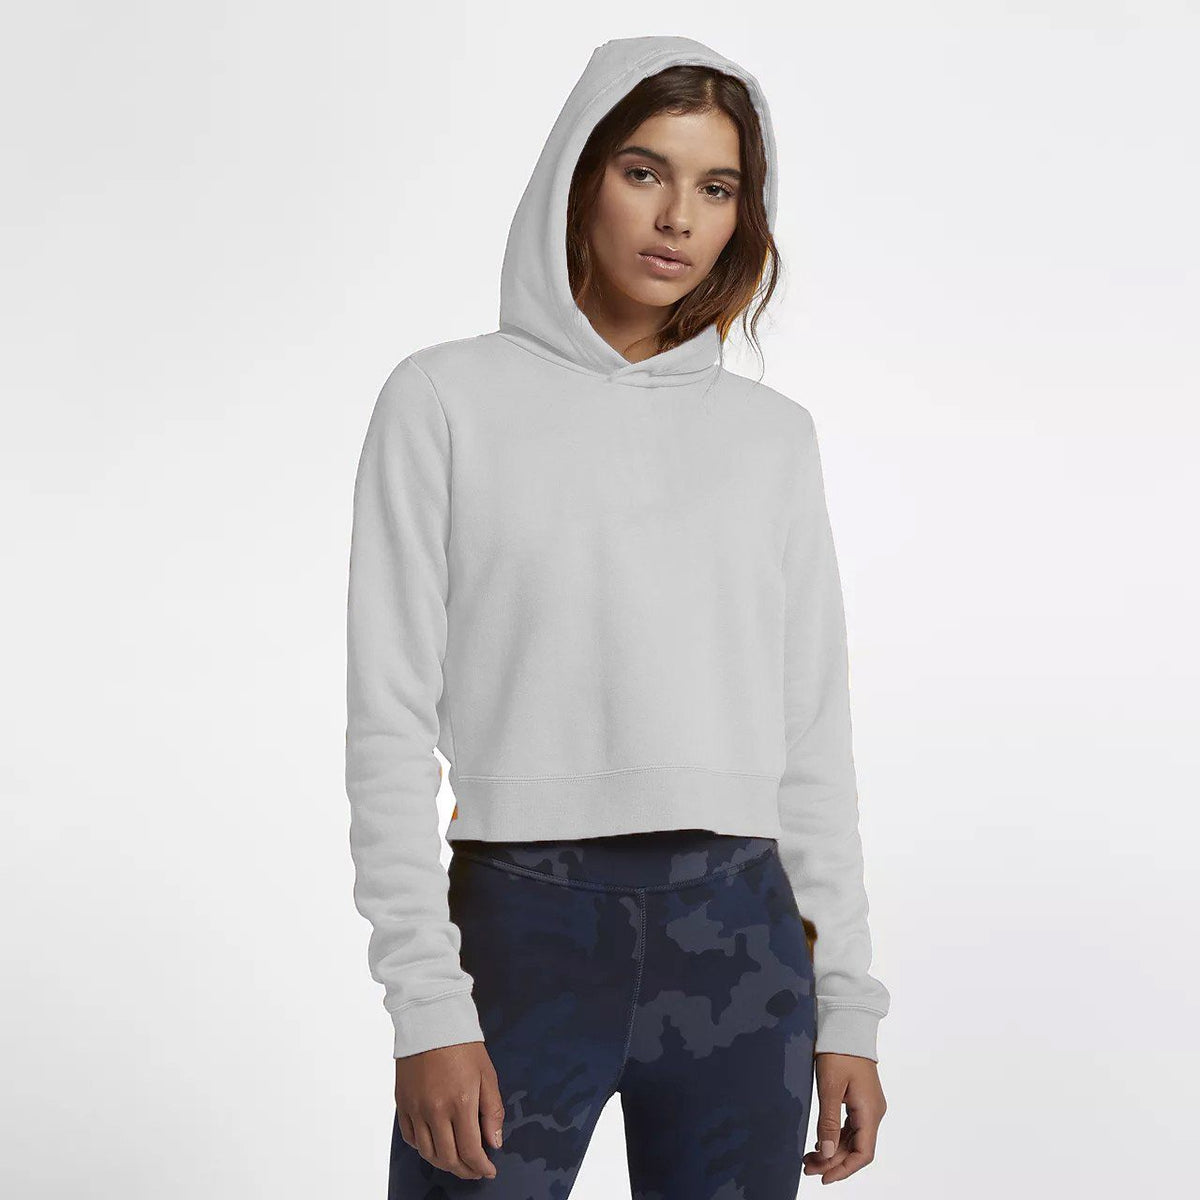 Tally Weijl Women's Minor Fault Fleece Cropped Hoodie Minor Fault SRK White 2XS